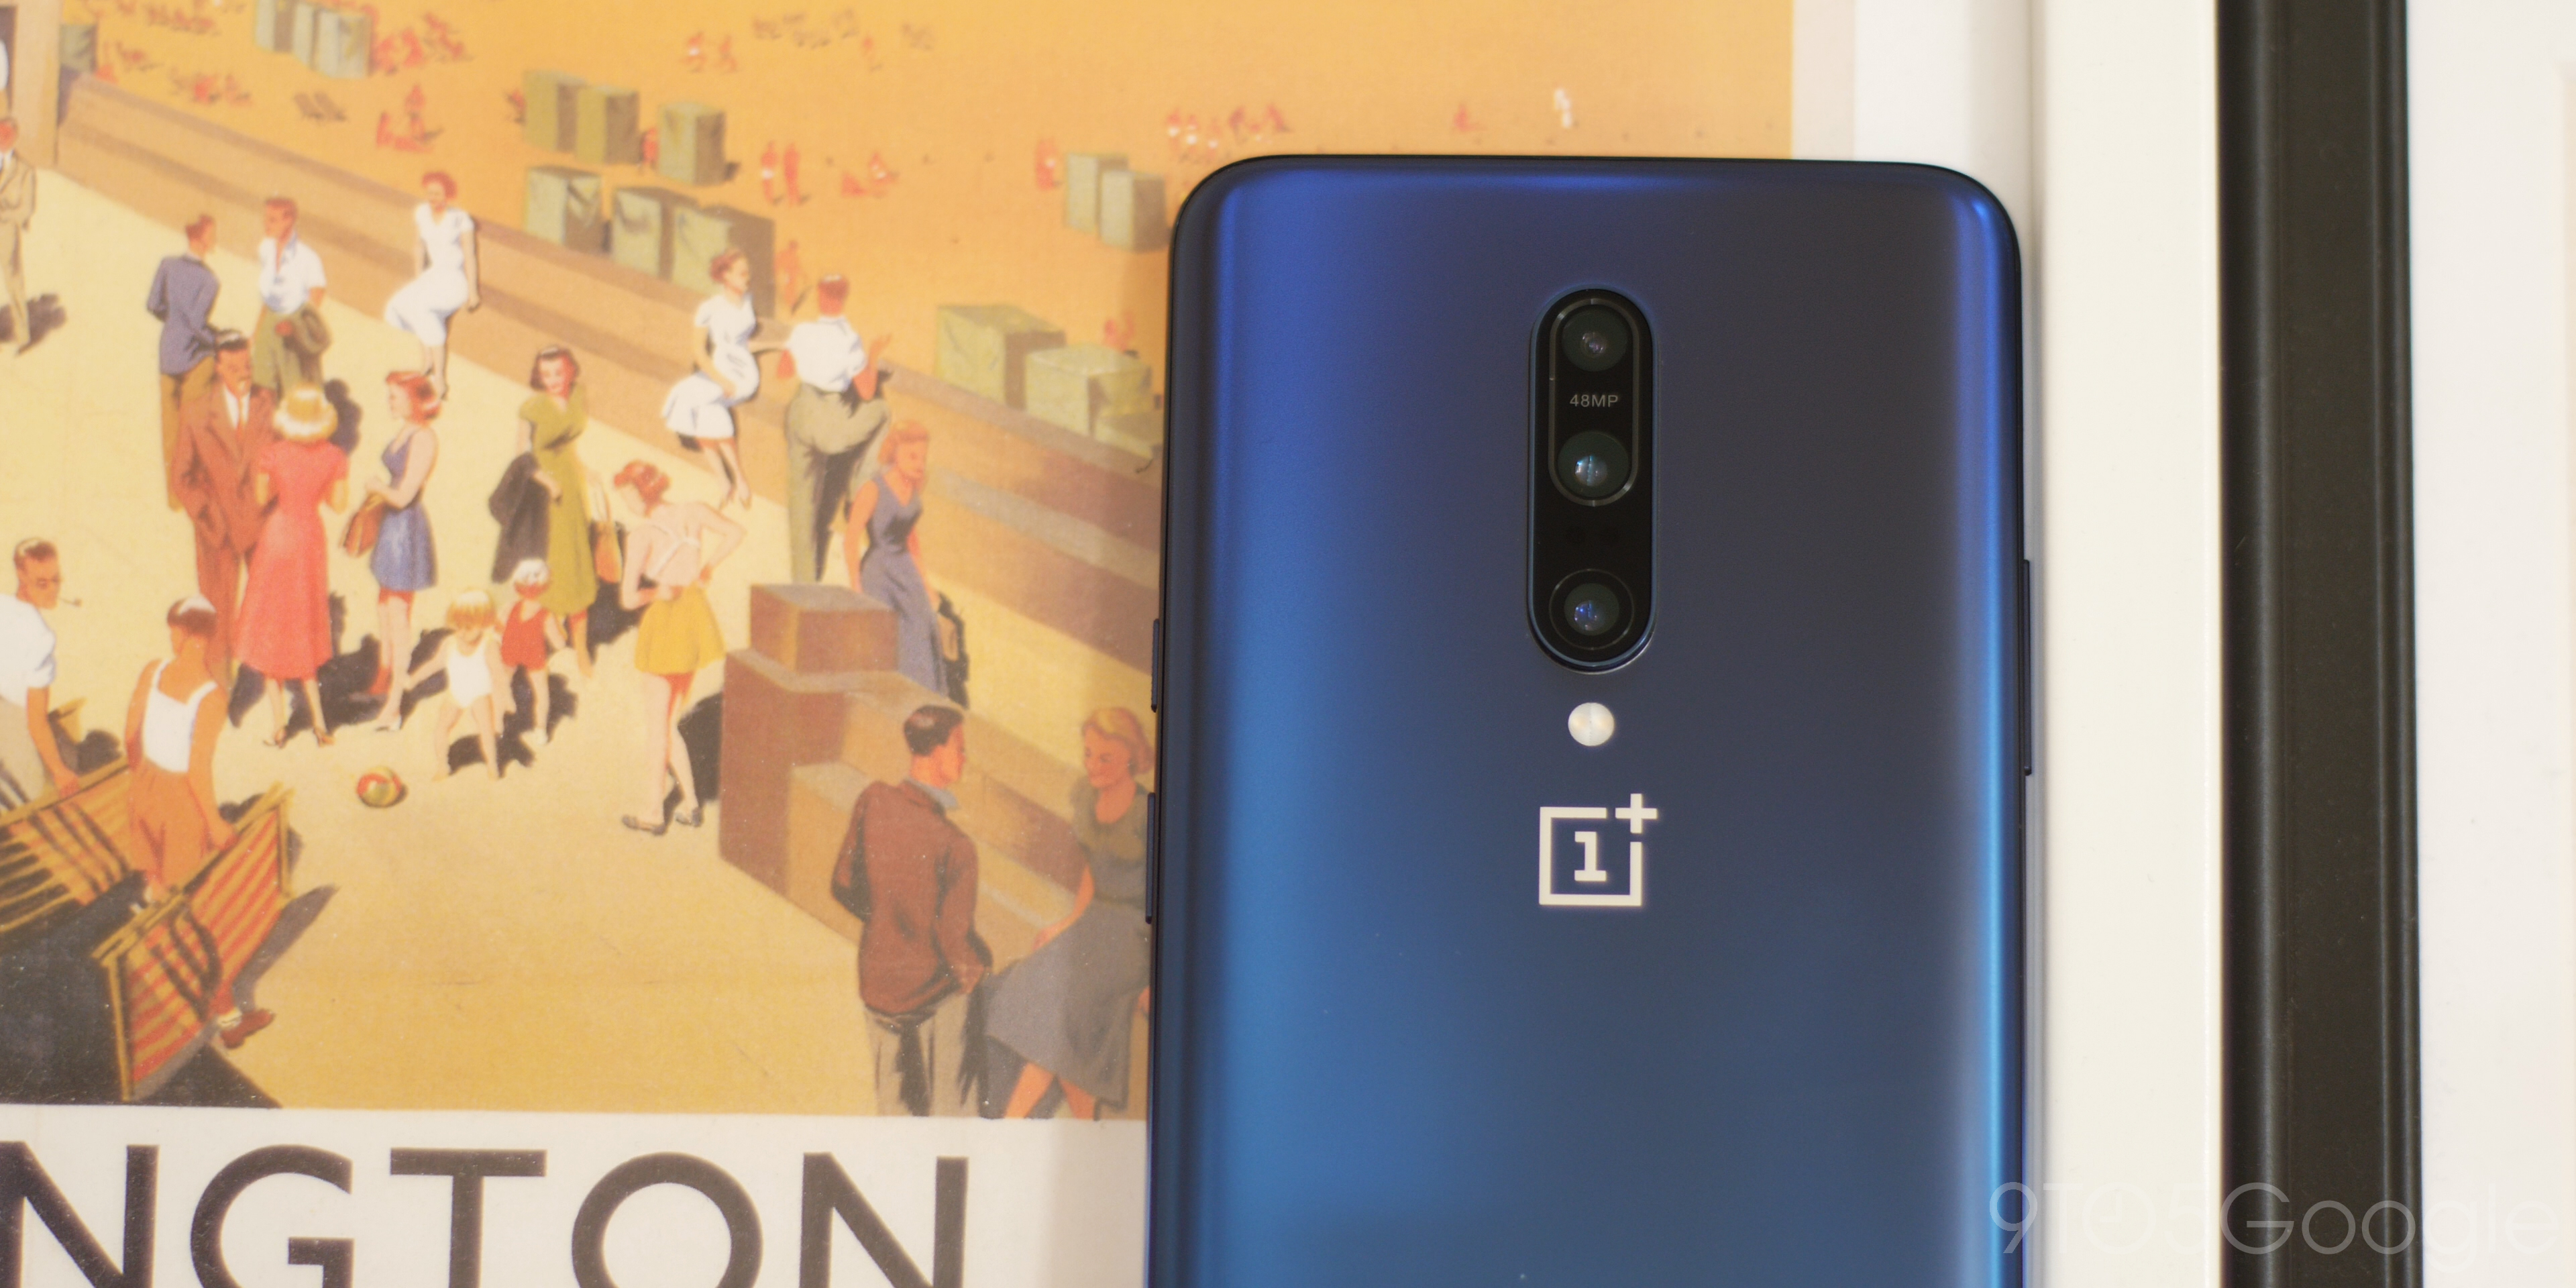 OnePlus promises camera fix for poor HDR, Nightscape images on OnePlus 7 Pro